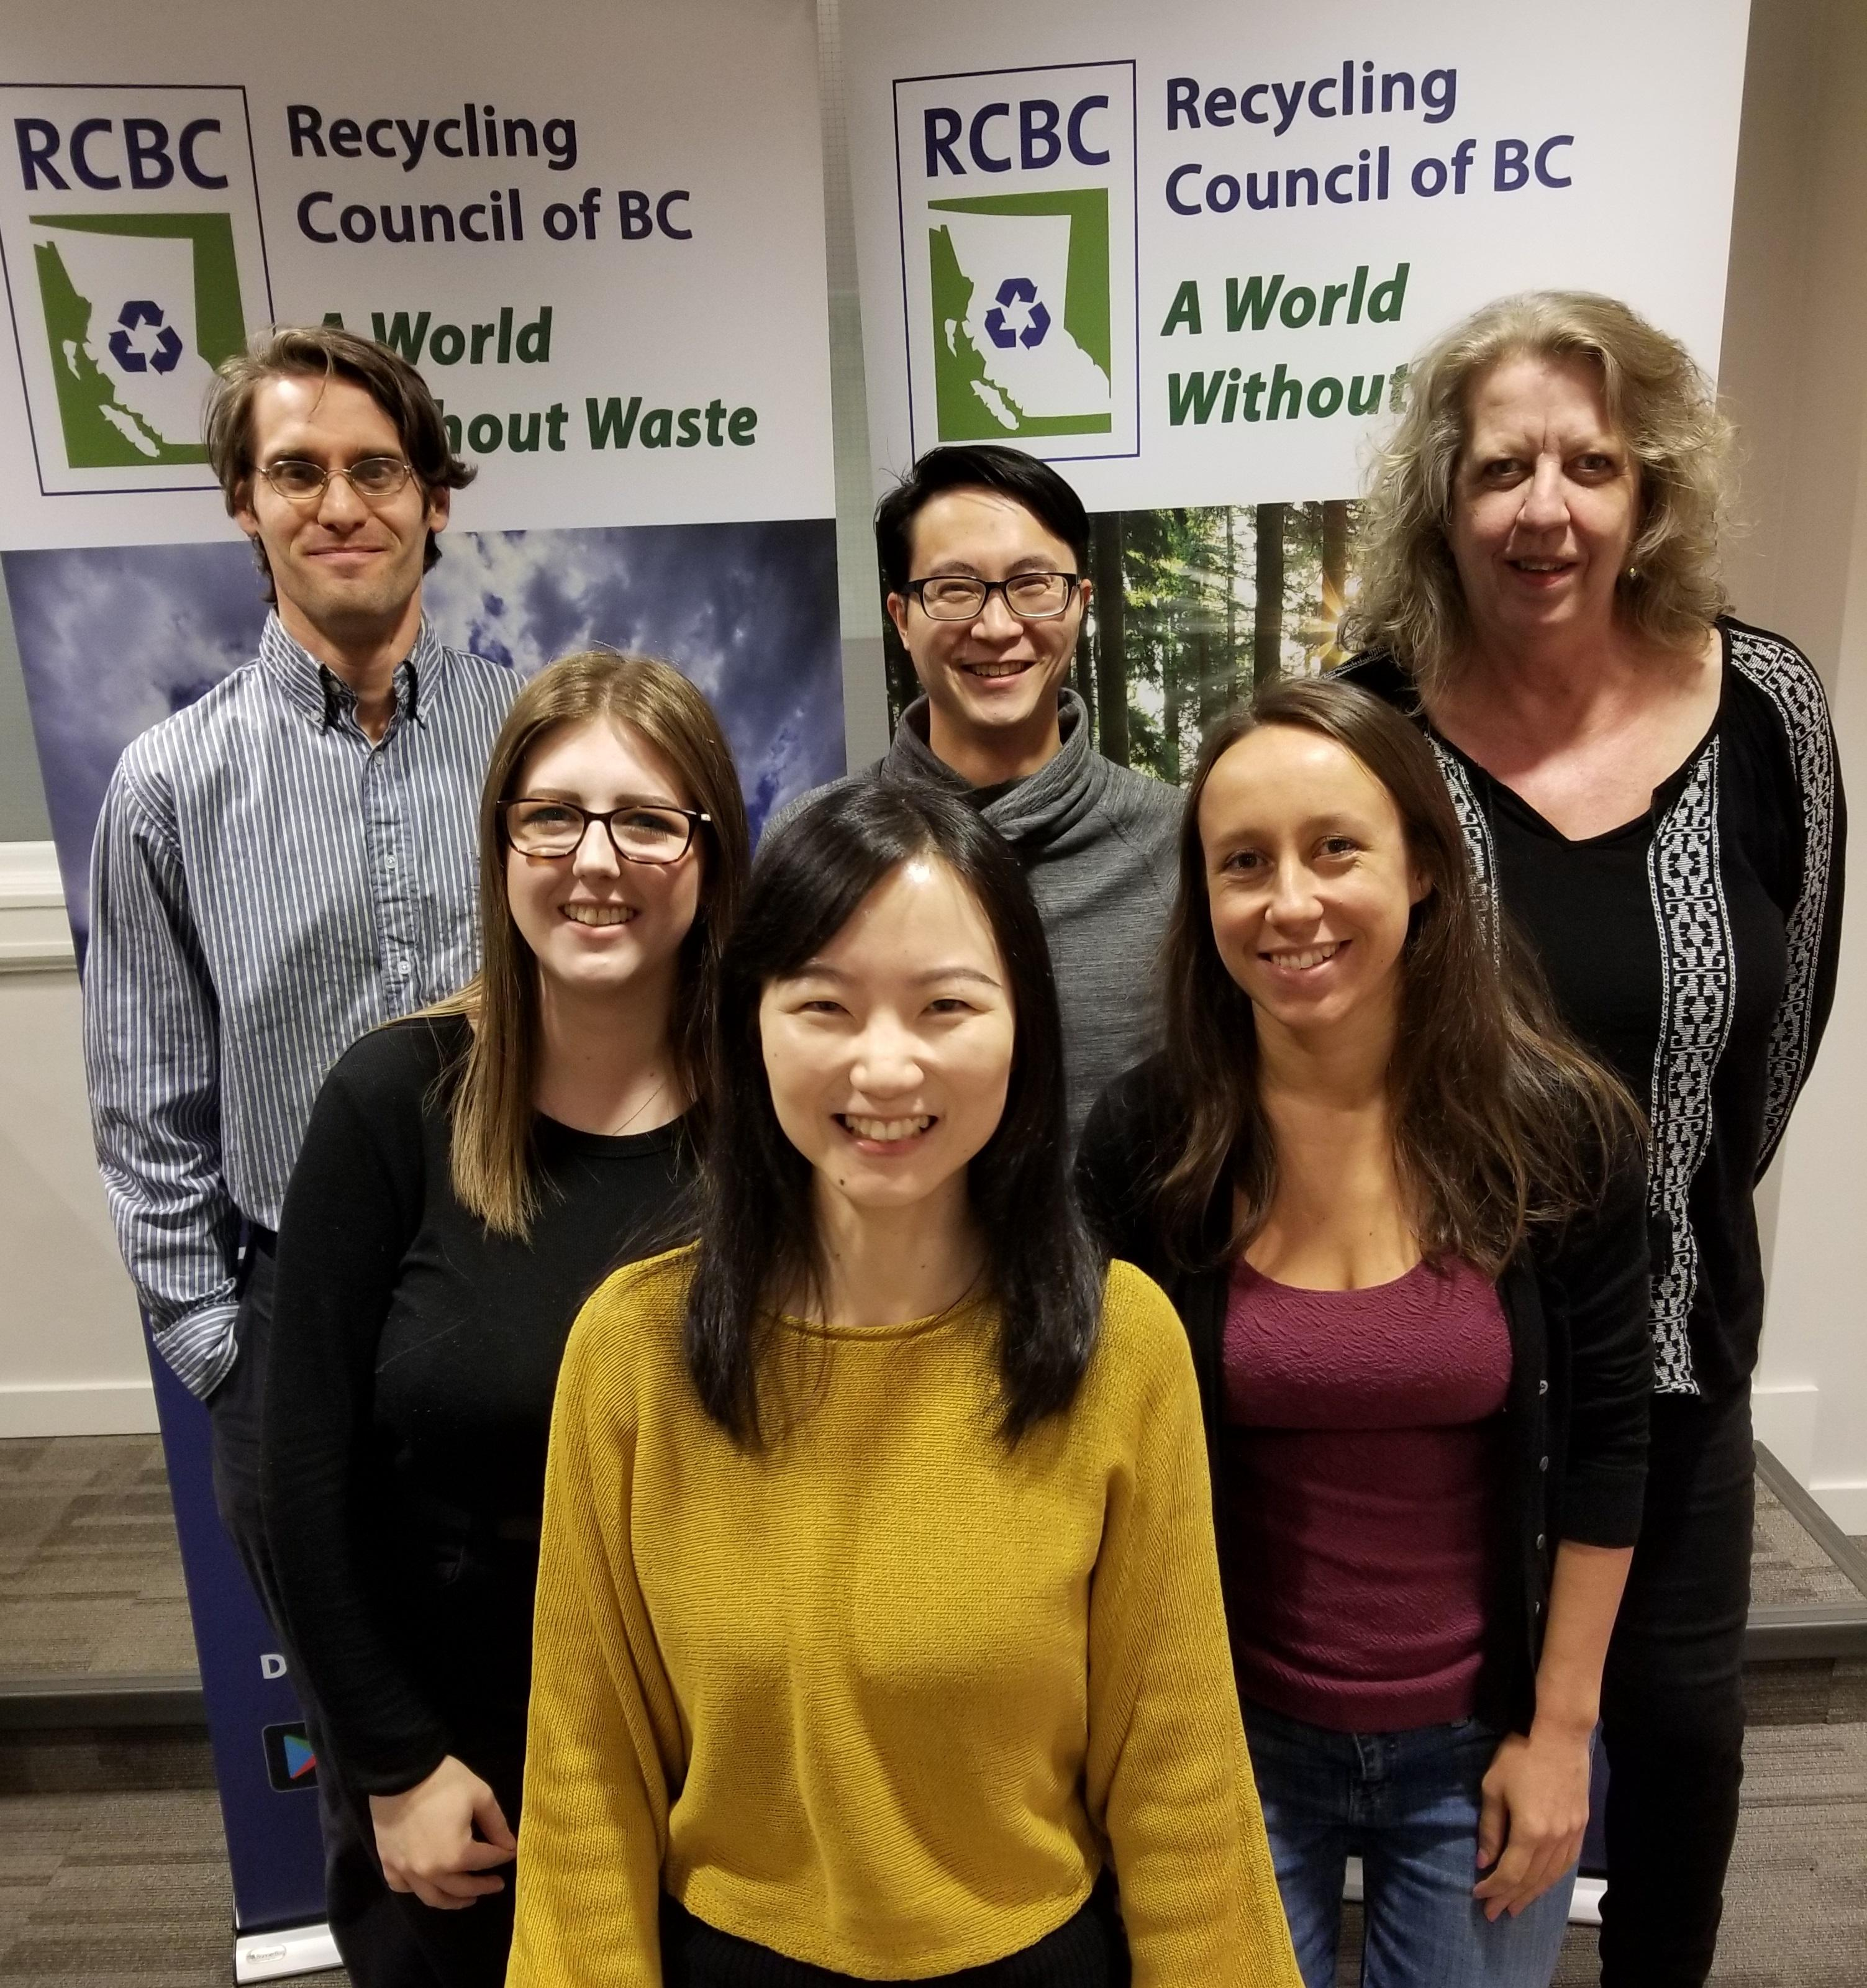 Recycling Hotline Group Photo